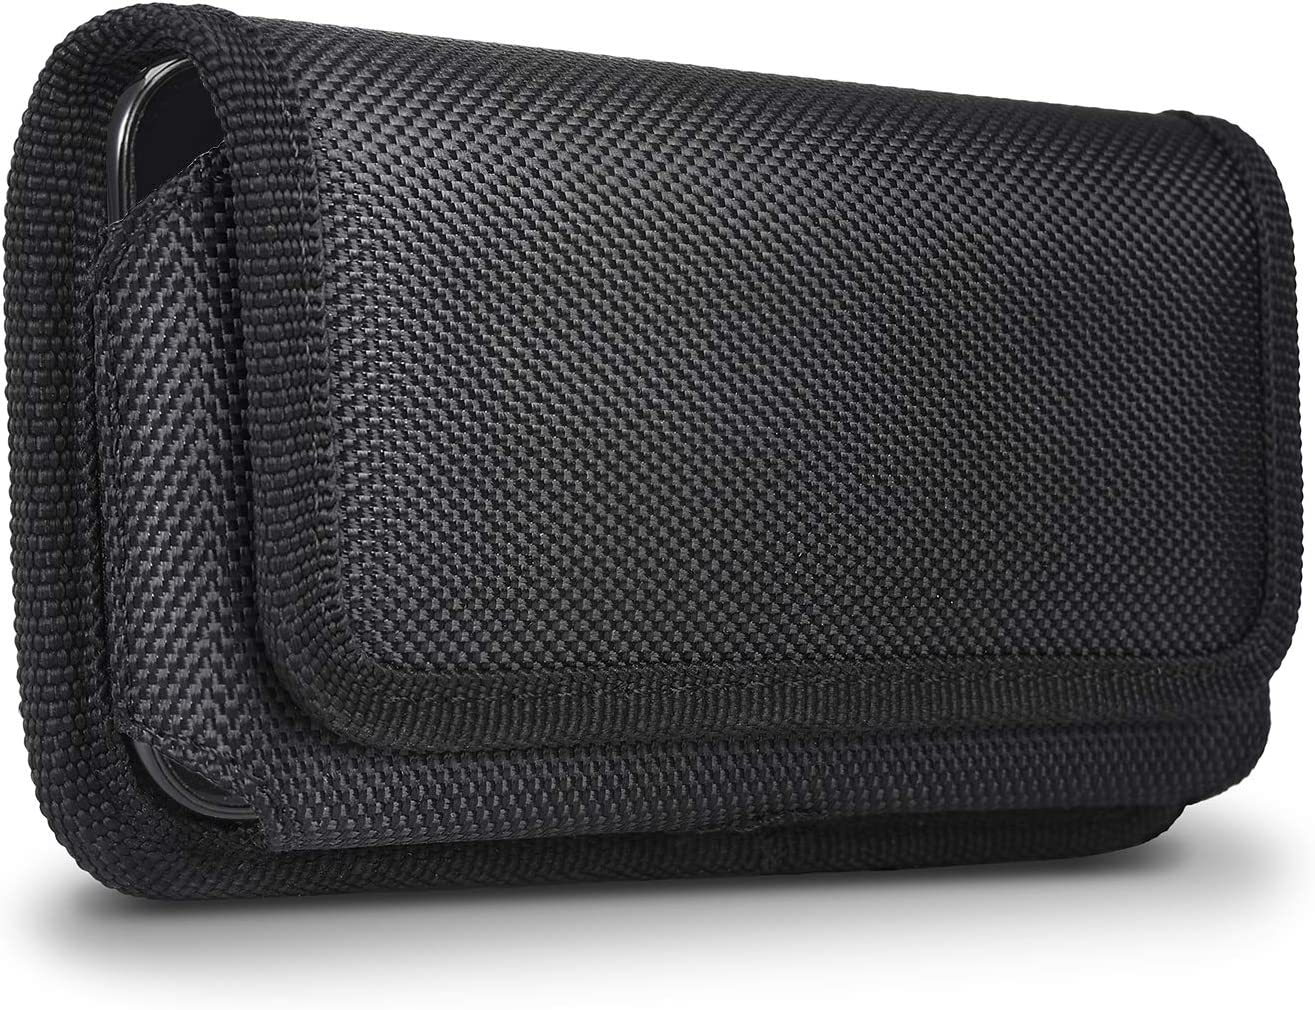 for iPhone X Belt Case, miadore Horizontal Belt Clip Holster [Magnetic Flap] Black Nylon Phone Holder Cover [Elastic Side] with Belt Loops for iPhone X (for Thin Case)